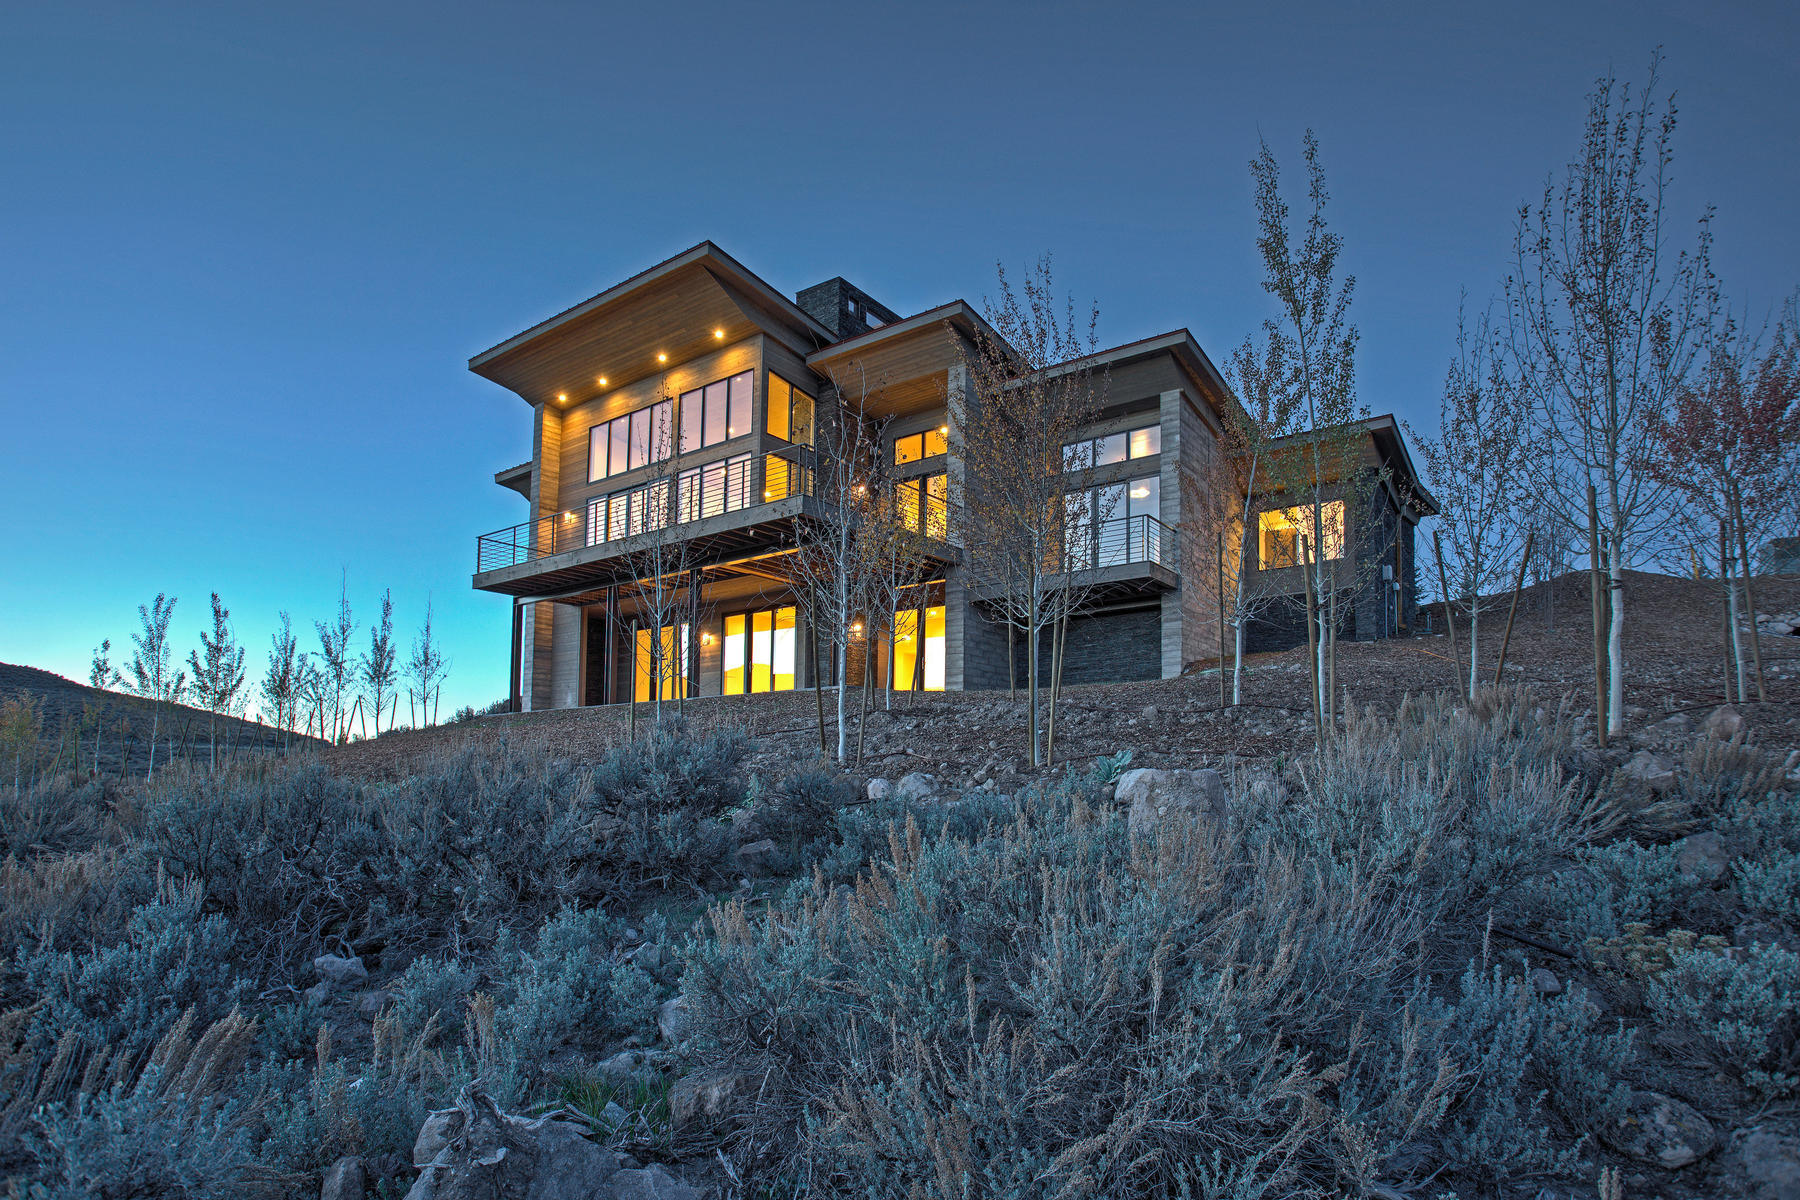 Single Family Home for Sale at Modern Luxury In Your Mountain Escape - Promontory 6699 Golden Bear Loop West, Park City, Utah, 84098 United States